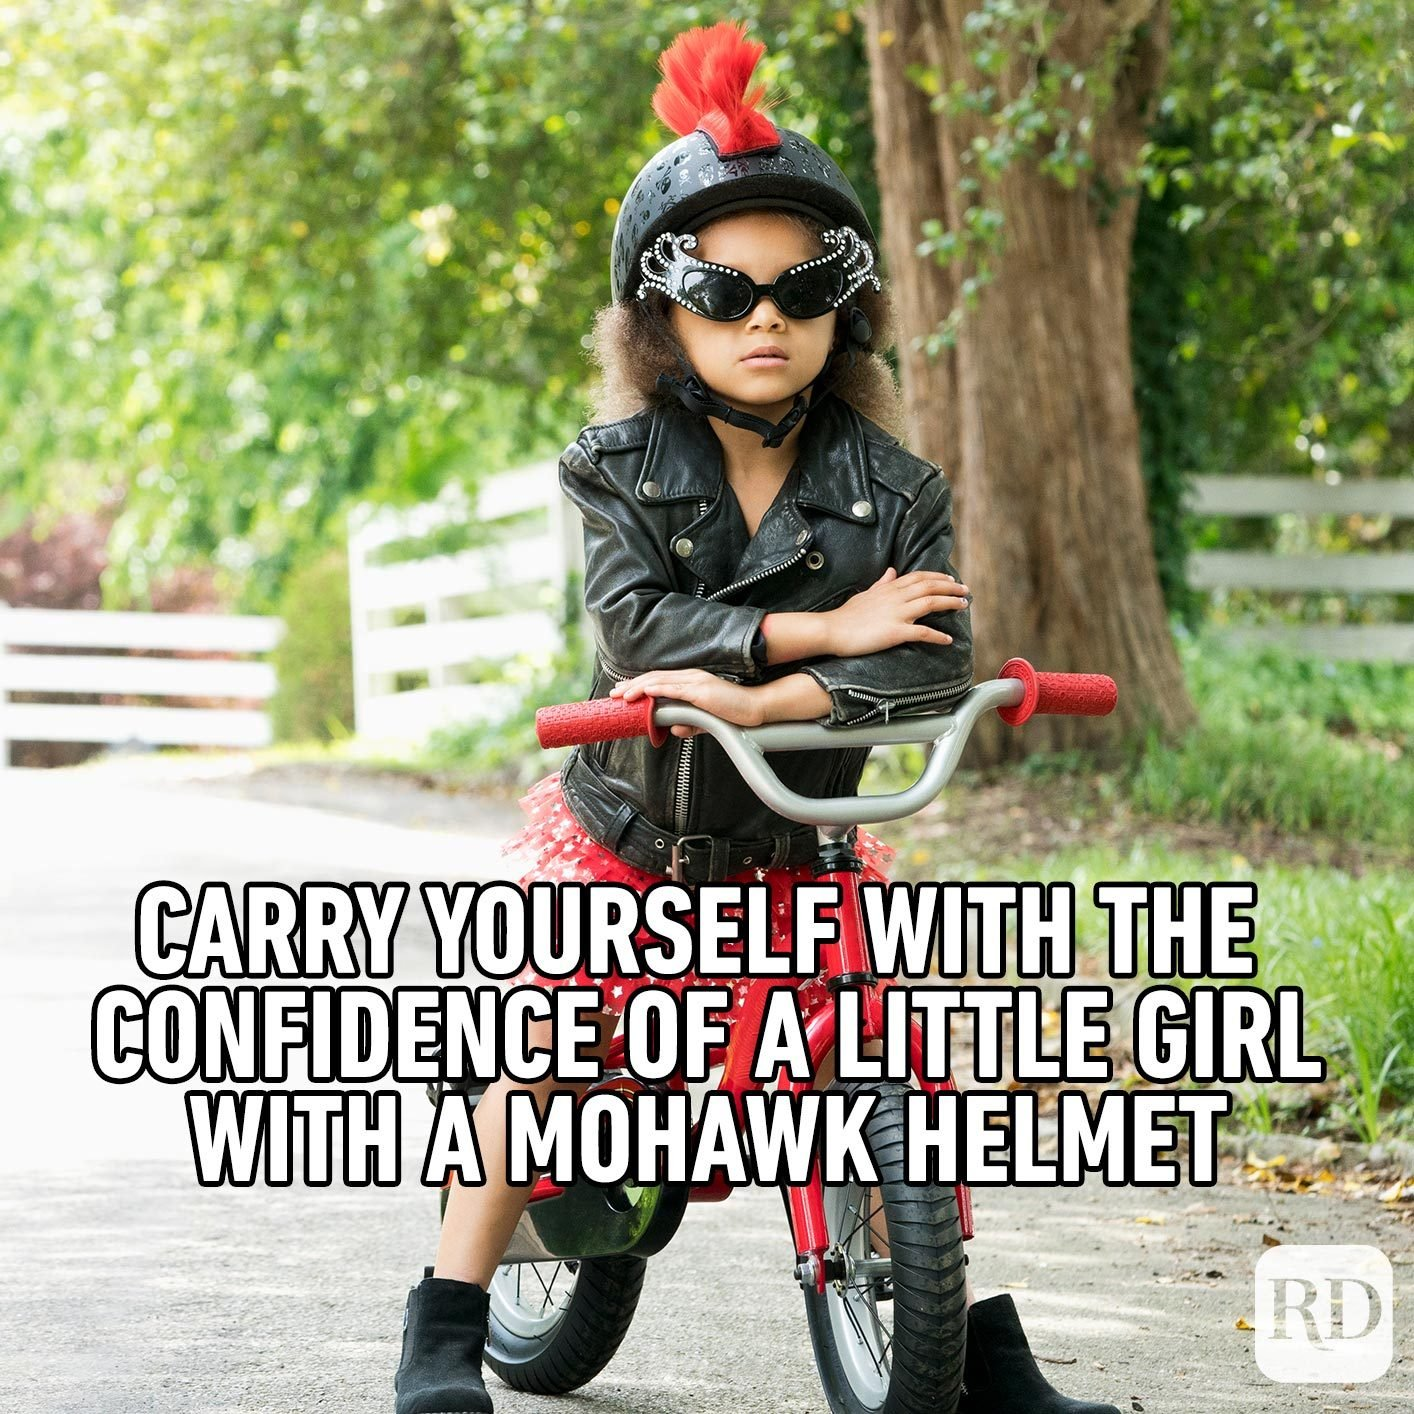 Young girl on a bike with a mohawk helmet. Meme text: Carry yourself with the confidence of a little girl with a mohawk helmet